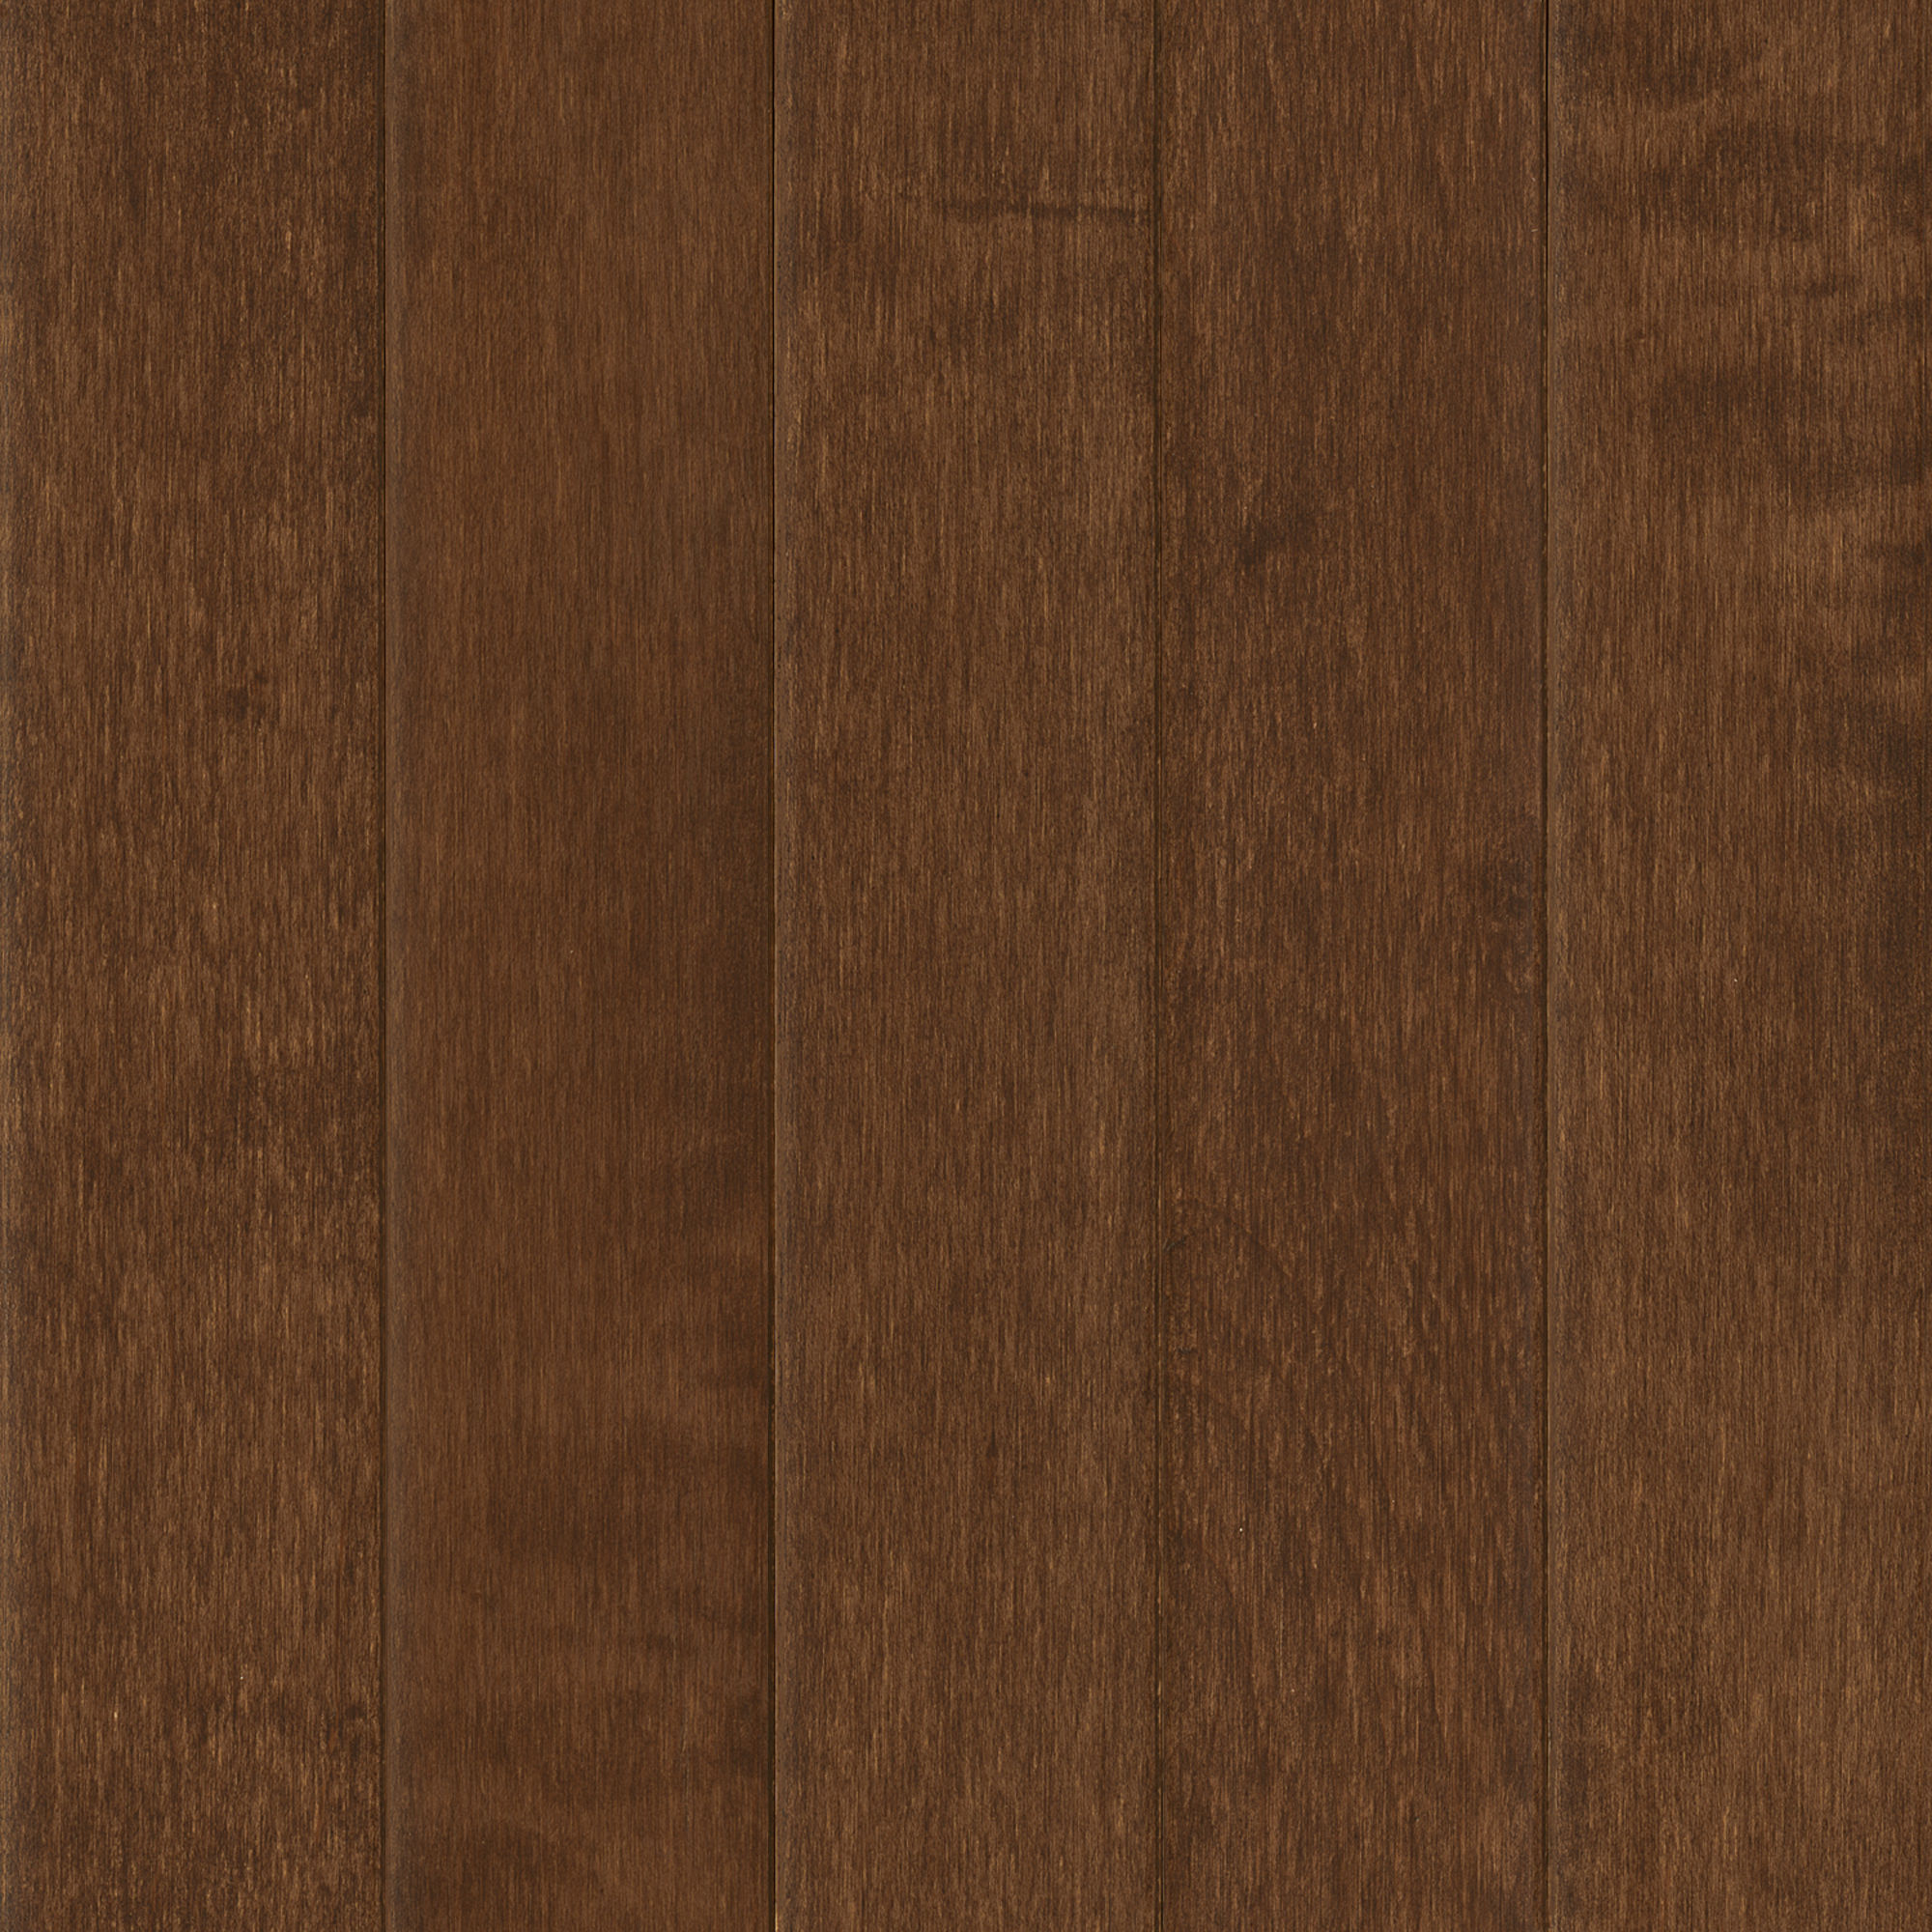 Hill Top Brown Maple